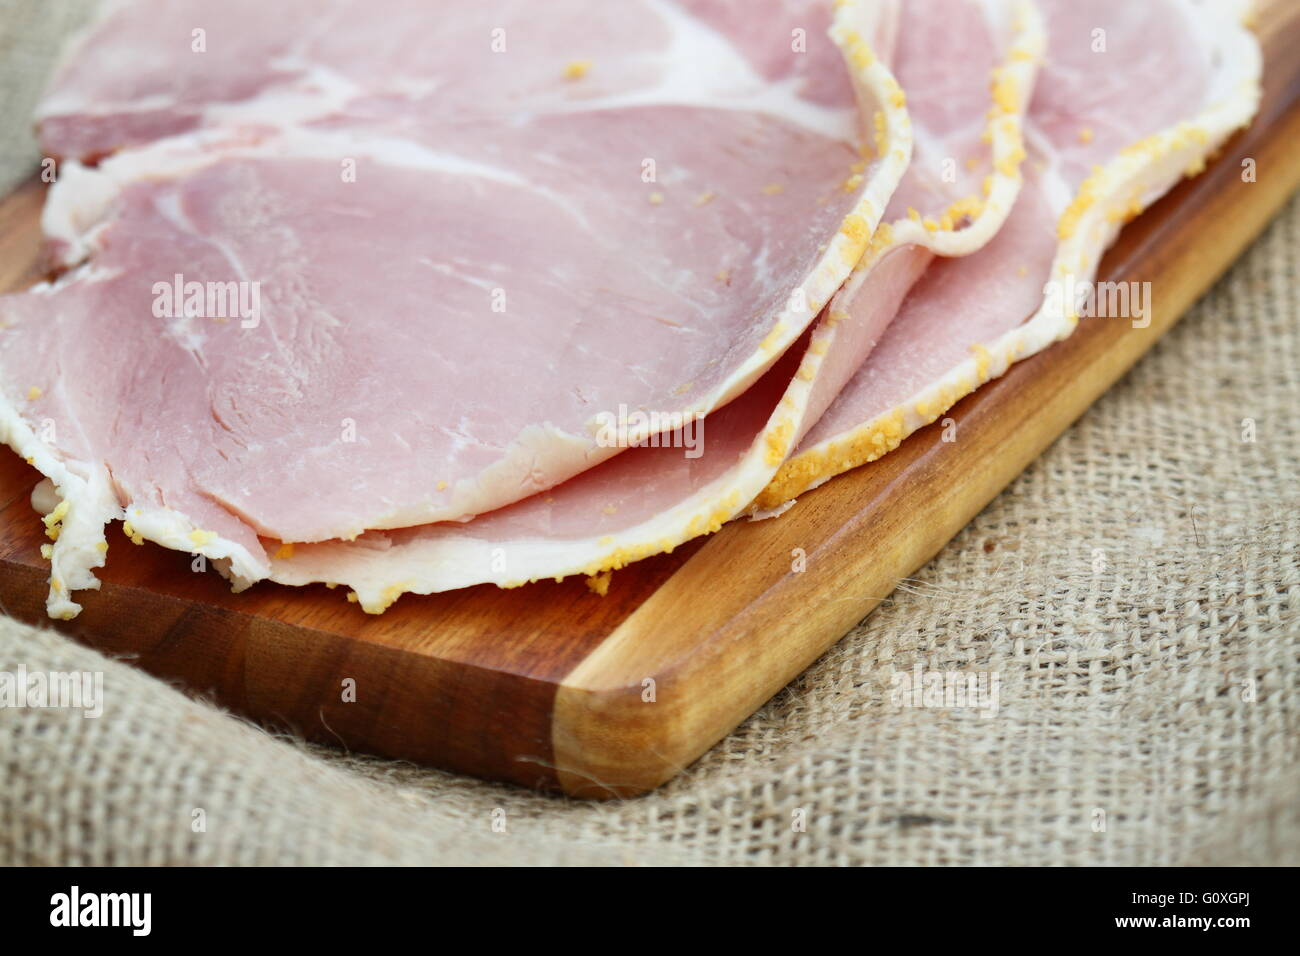 Ham slices wooden chopping board - Stock Image